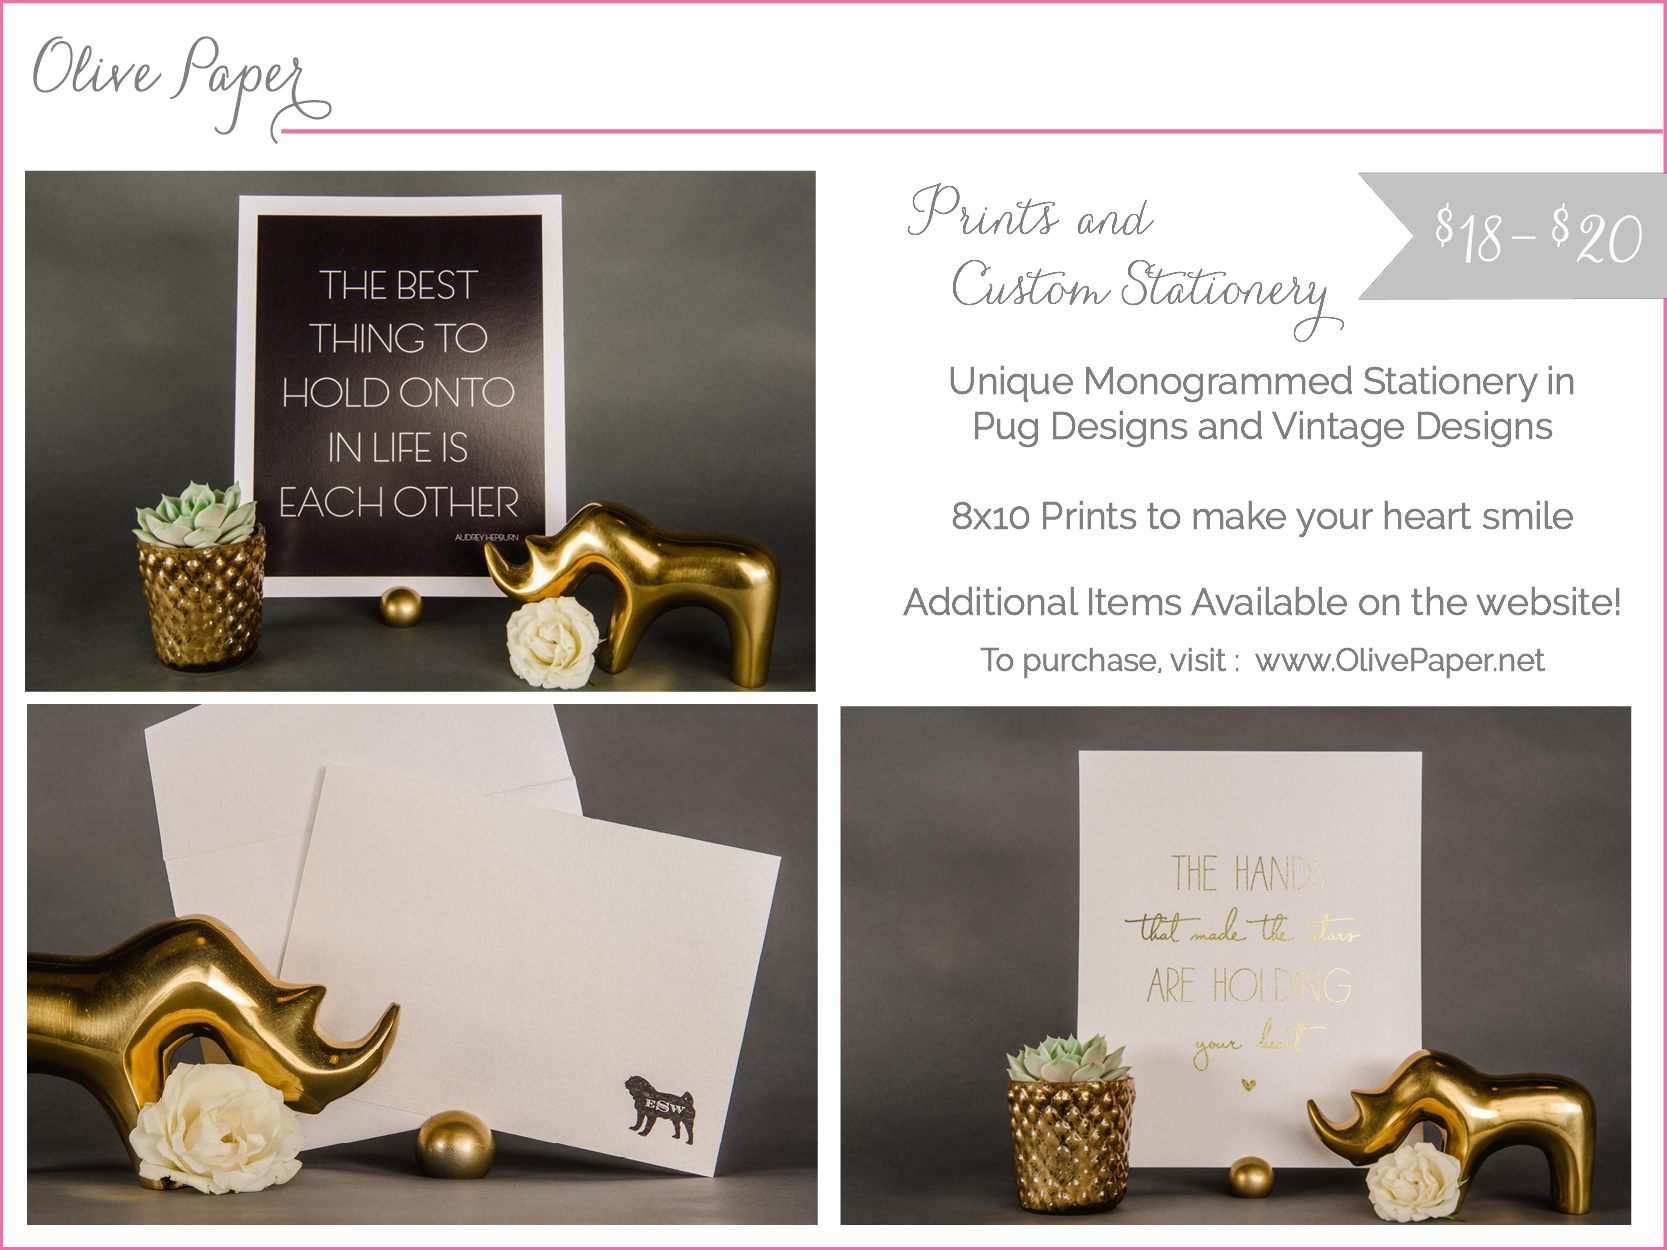 olive paper - prints and stationery - shop small